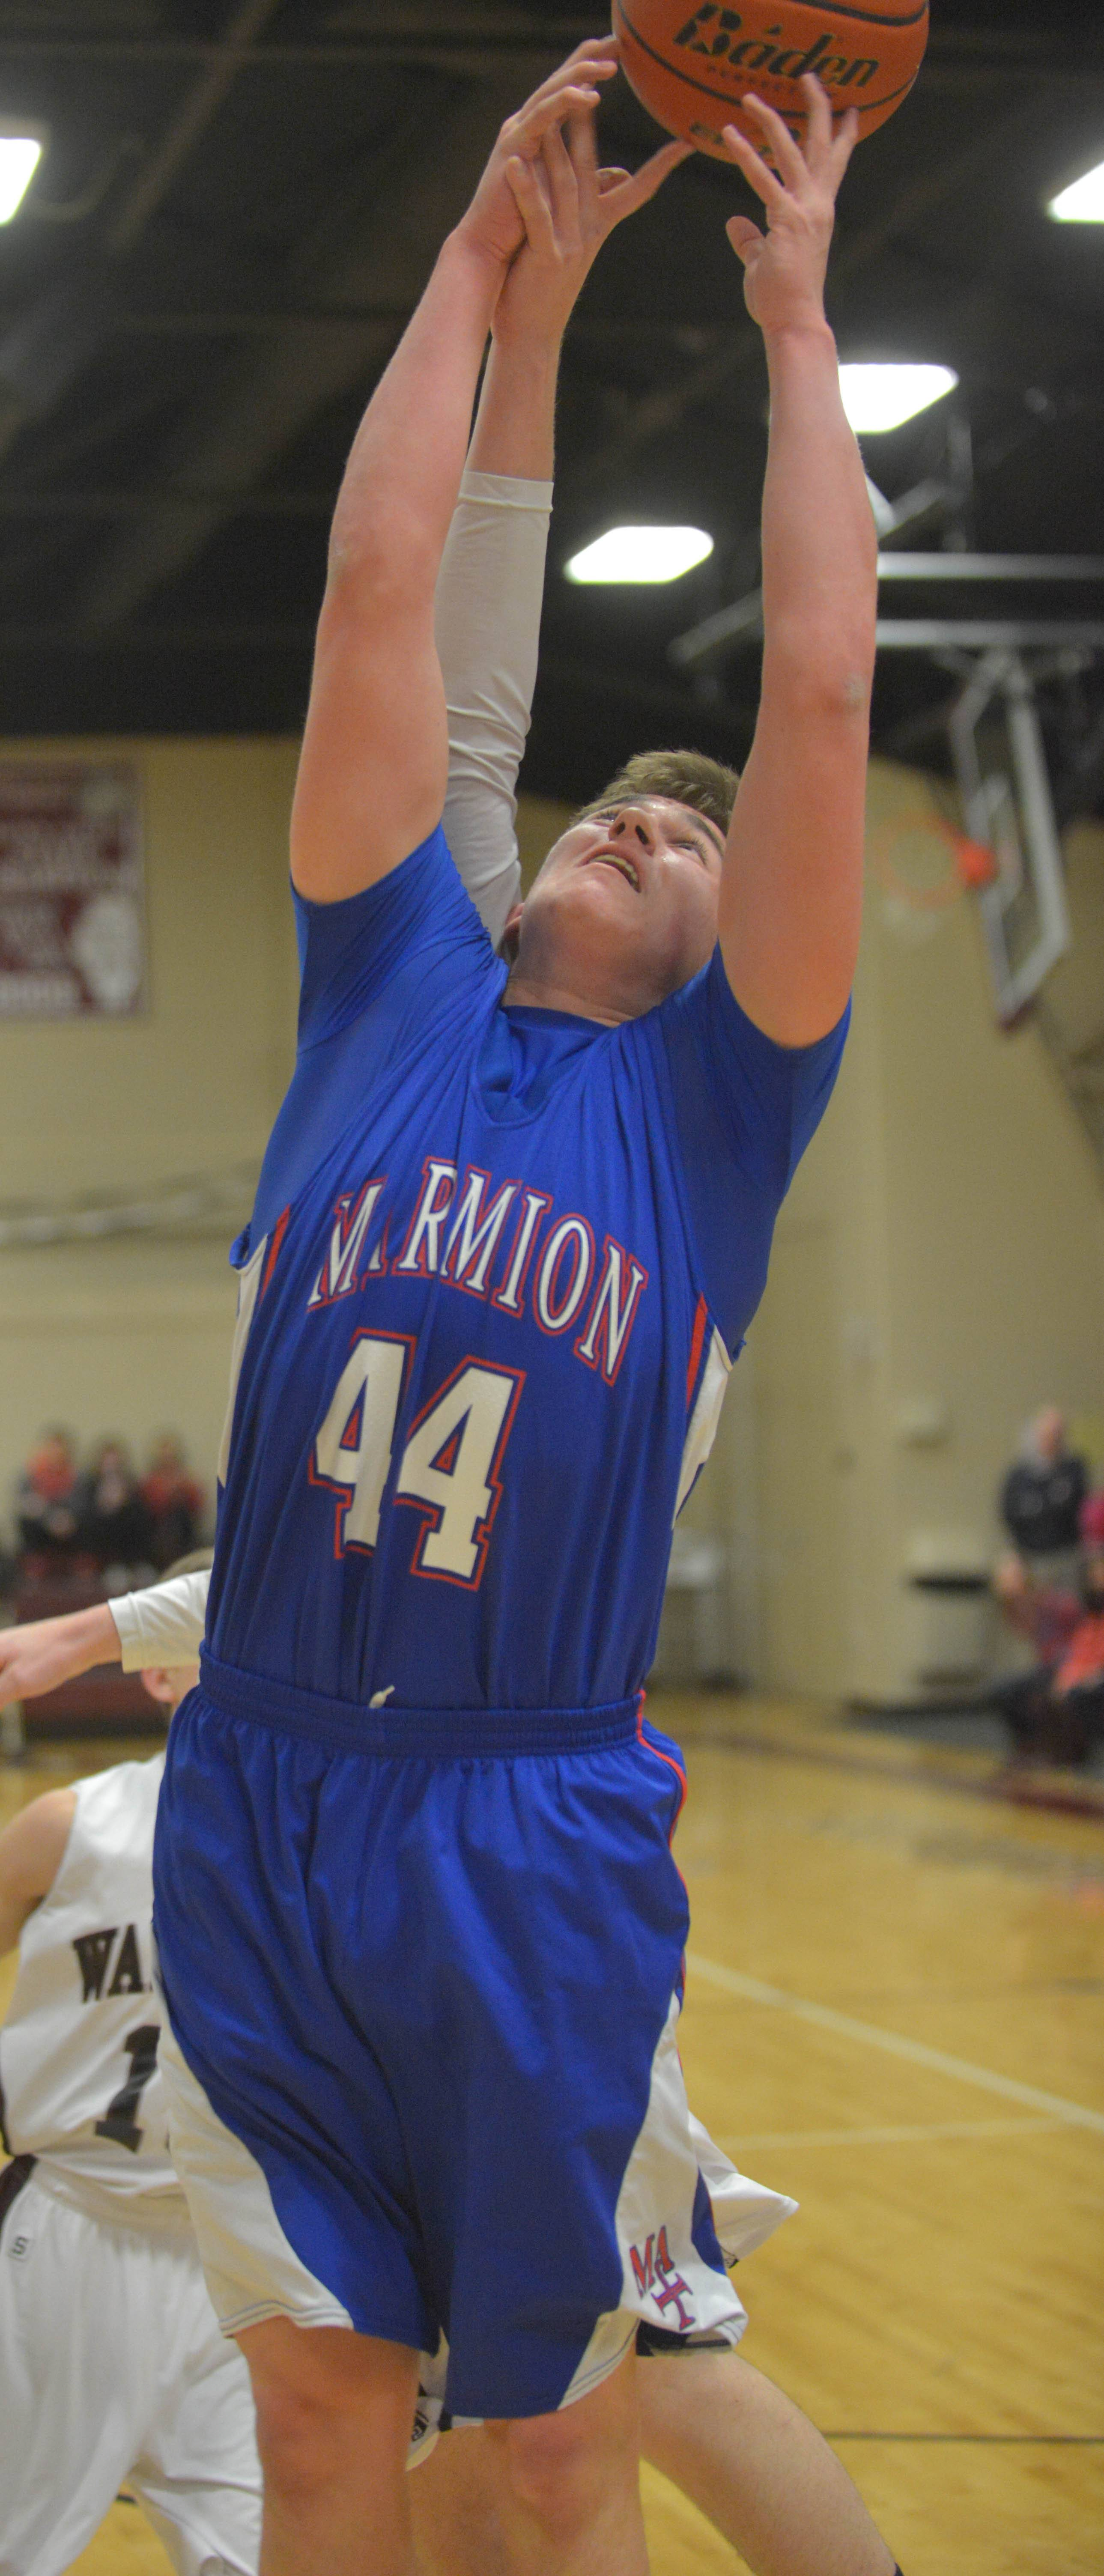 Daniel Bicknell of Marmion Academy goes for a rebound .